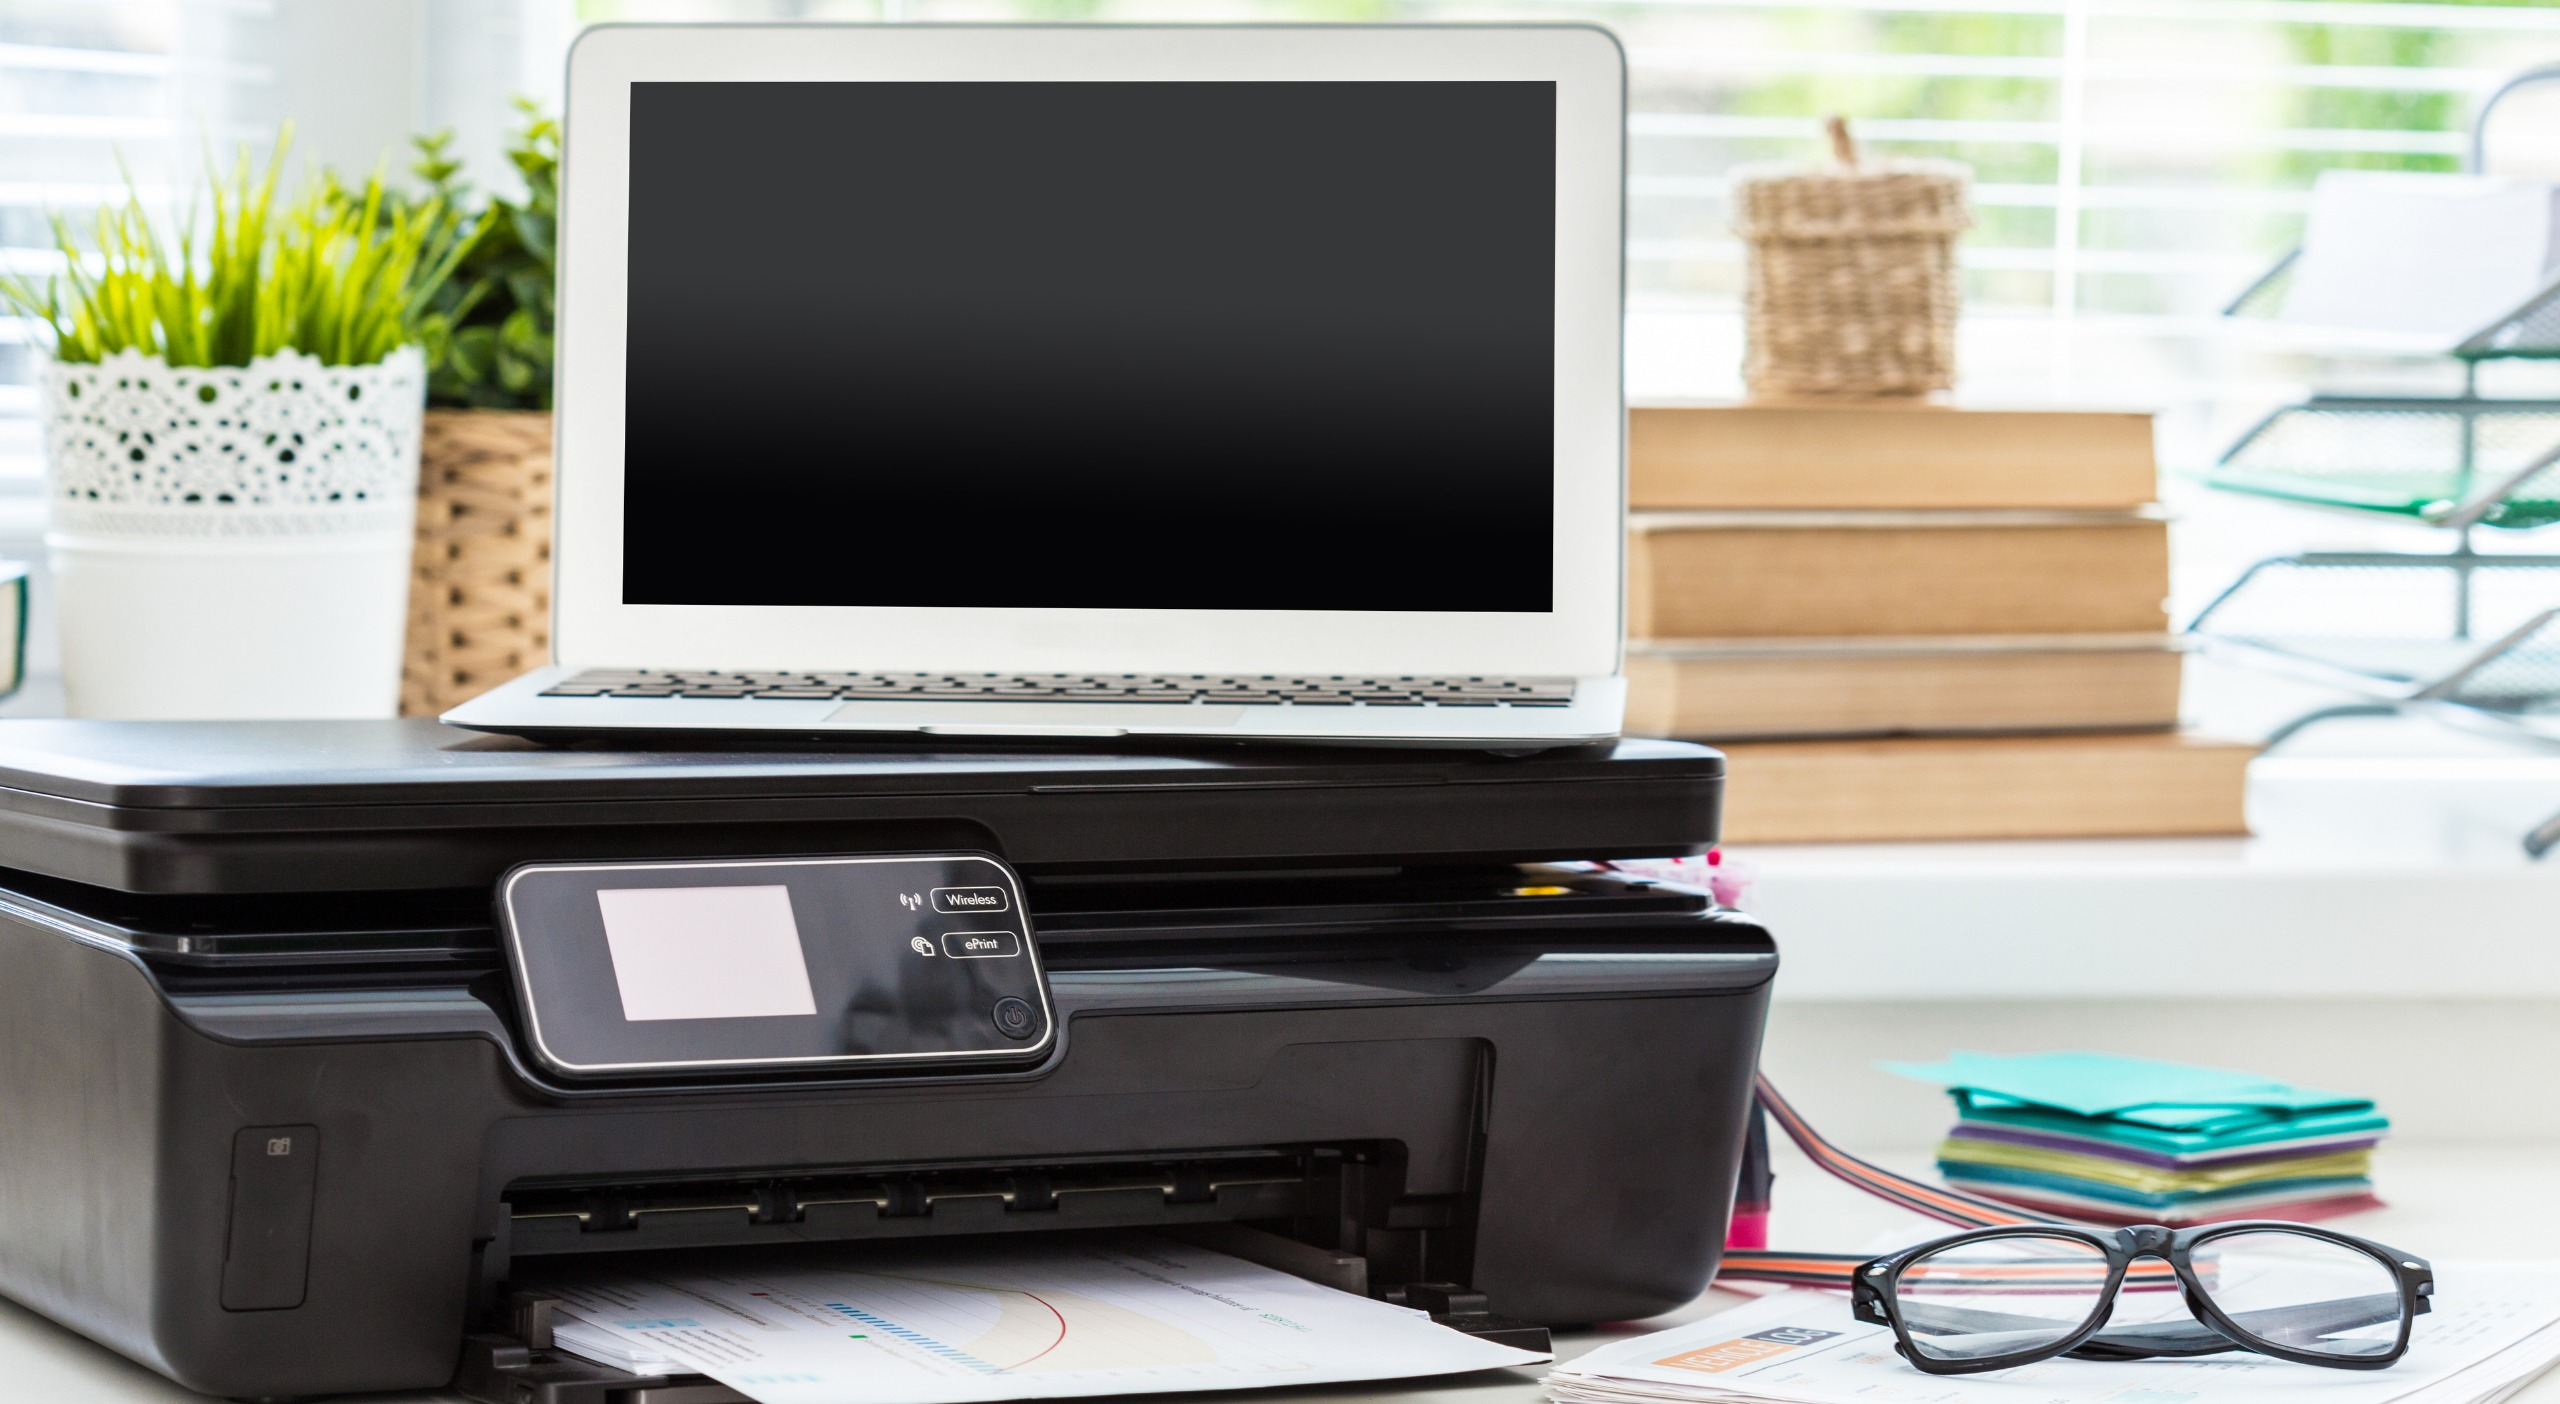 How To Connect A Canon Printer To WiFi The Easy Way